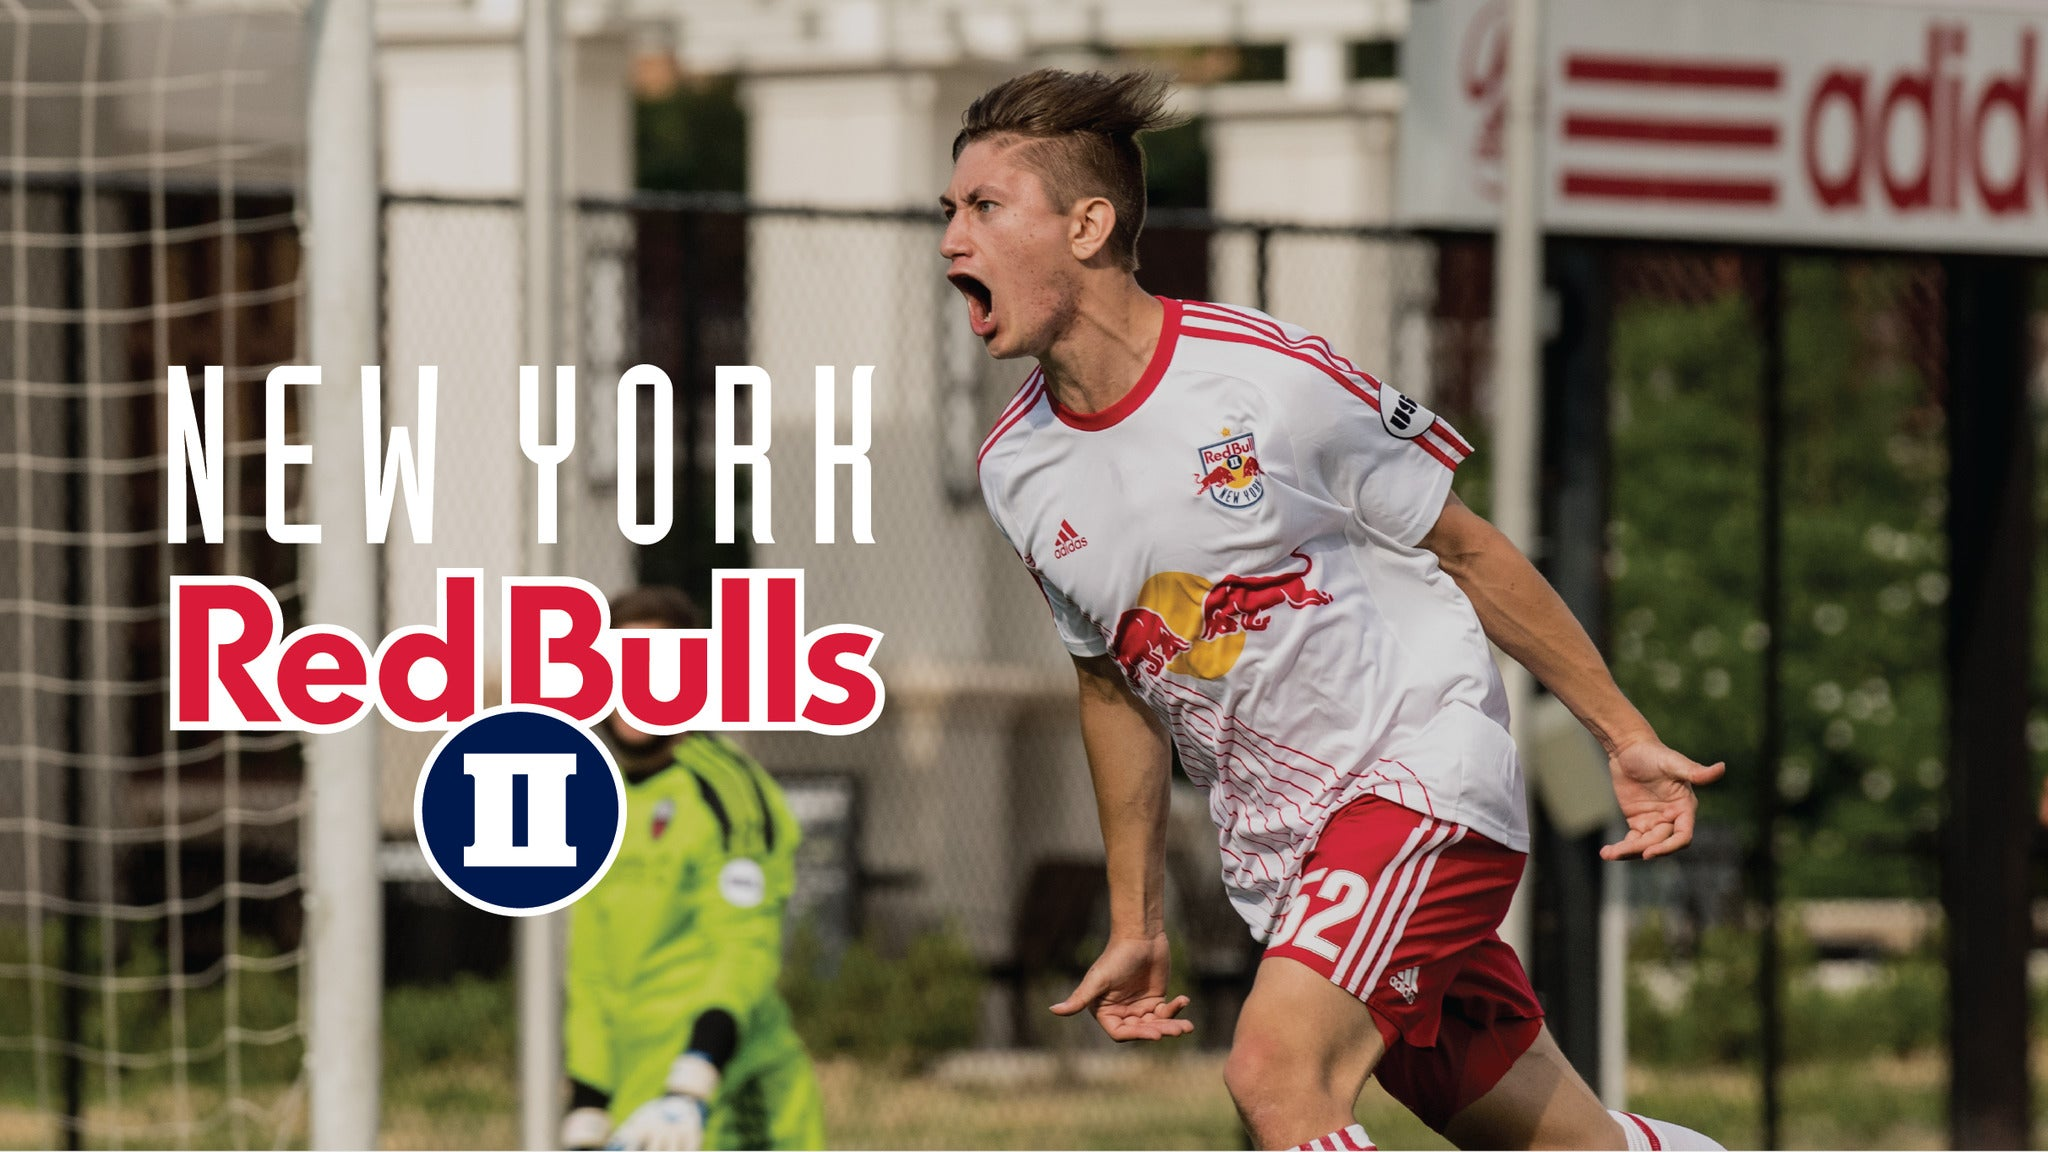 New York Red Bulls II vs. Toronto FC II at Red Bull Arena